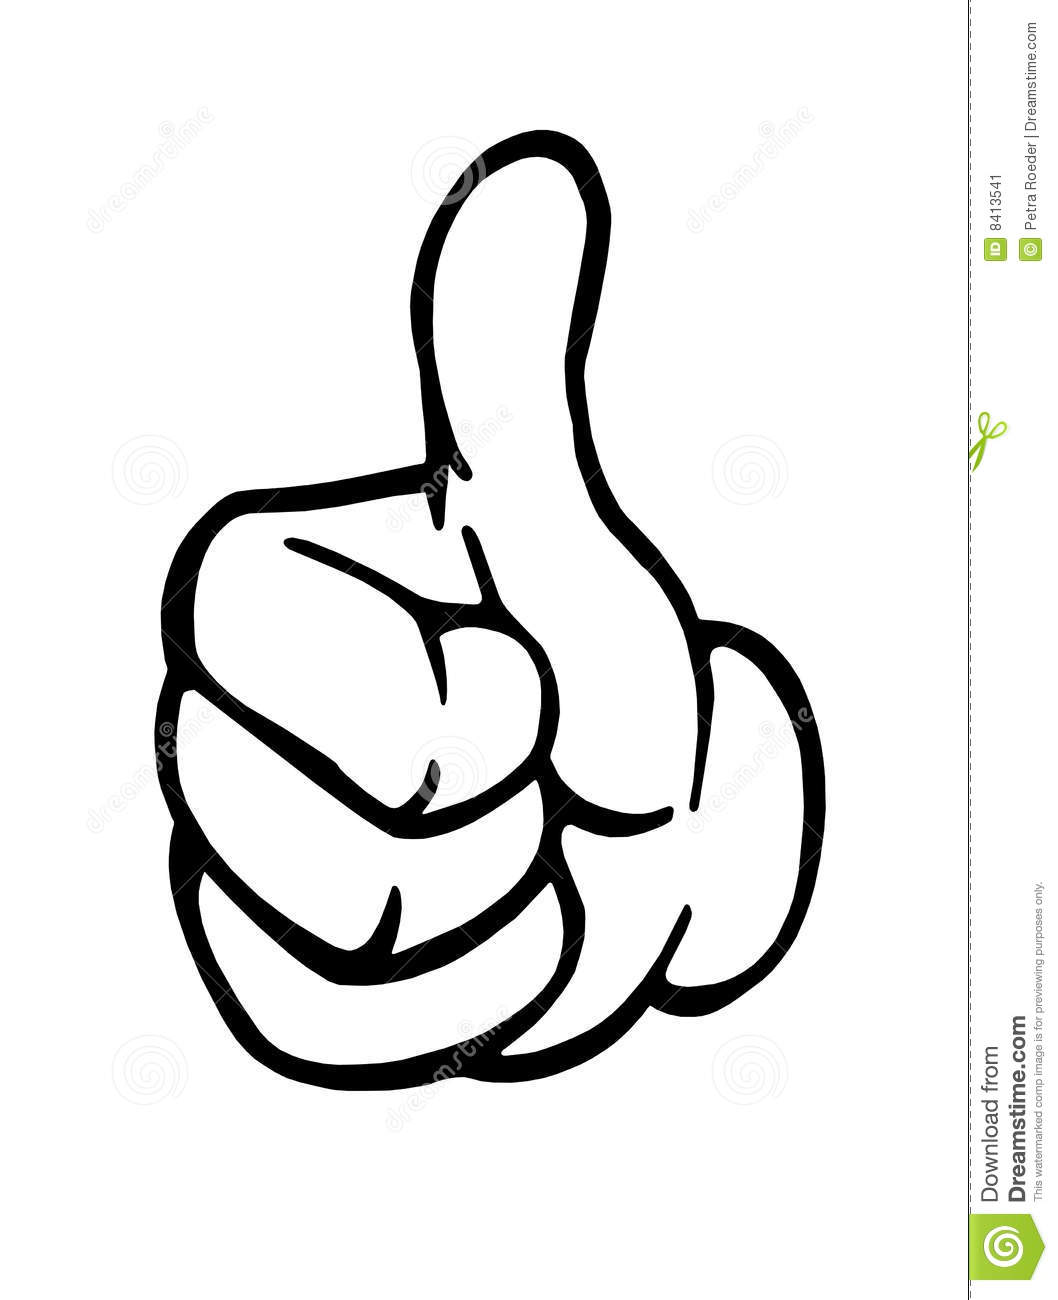 Thumbs Up Sign Clipart - Clipart Kid